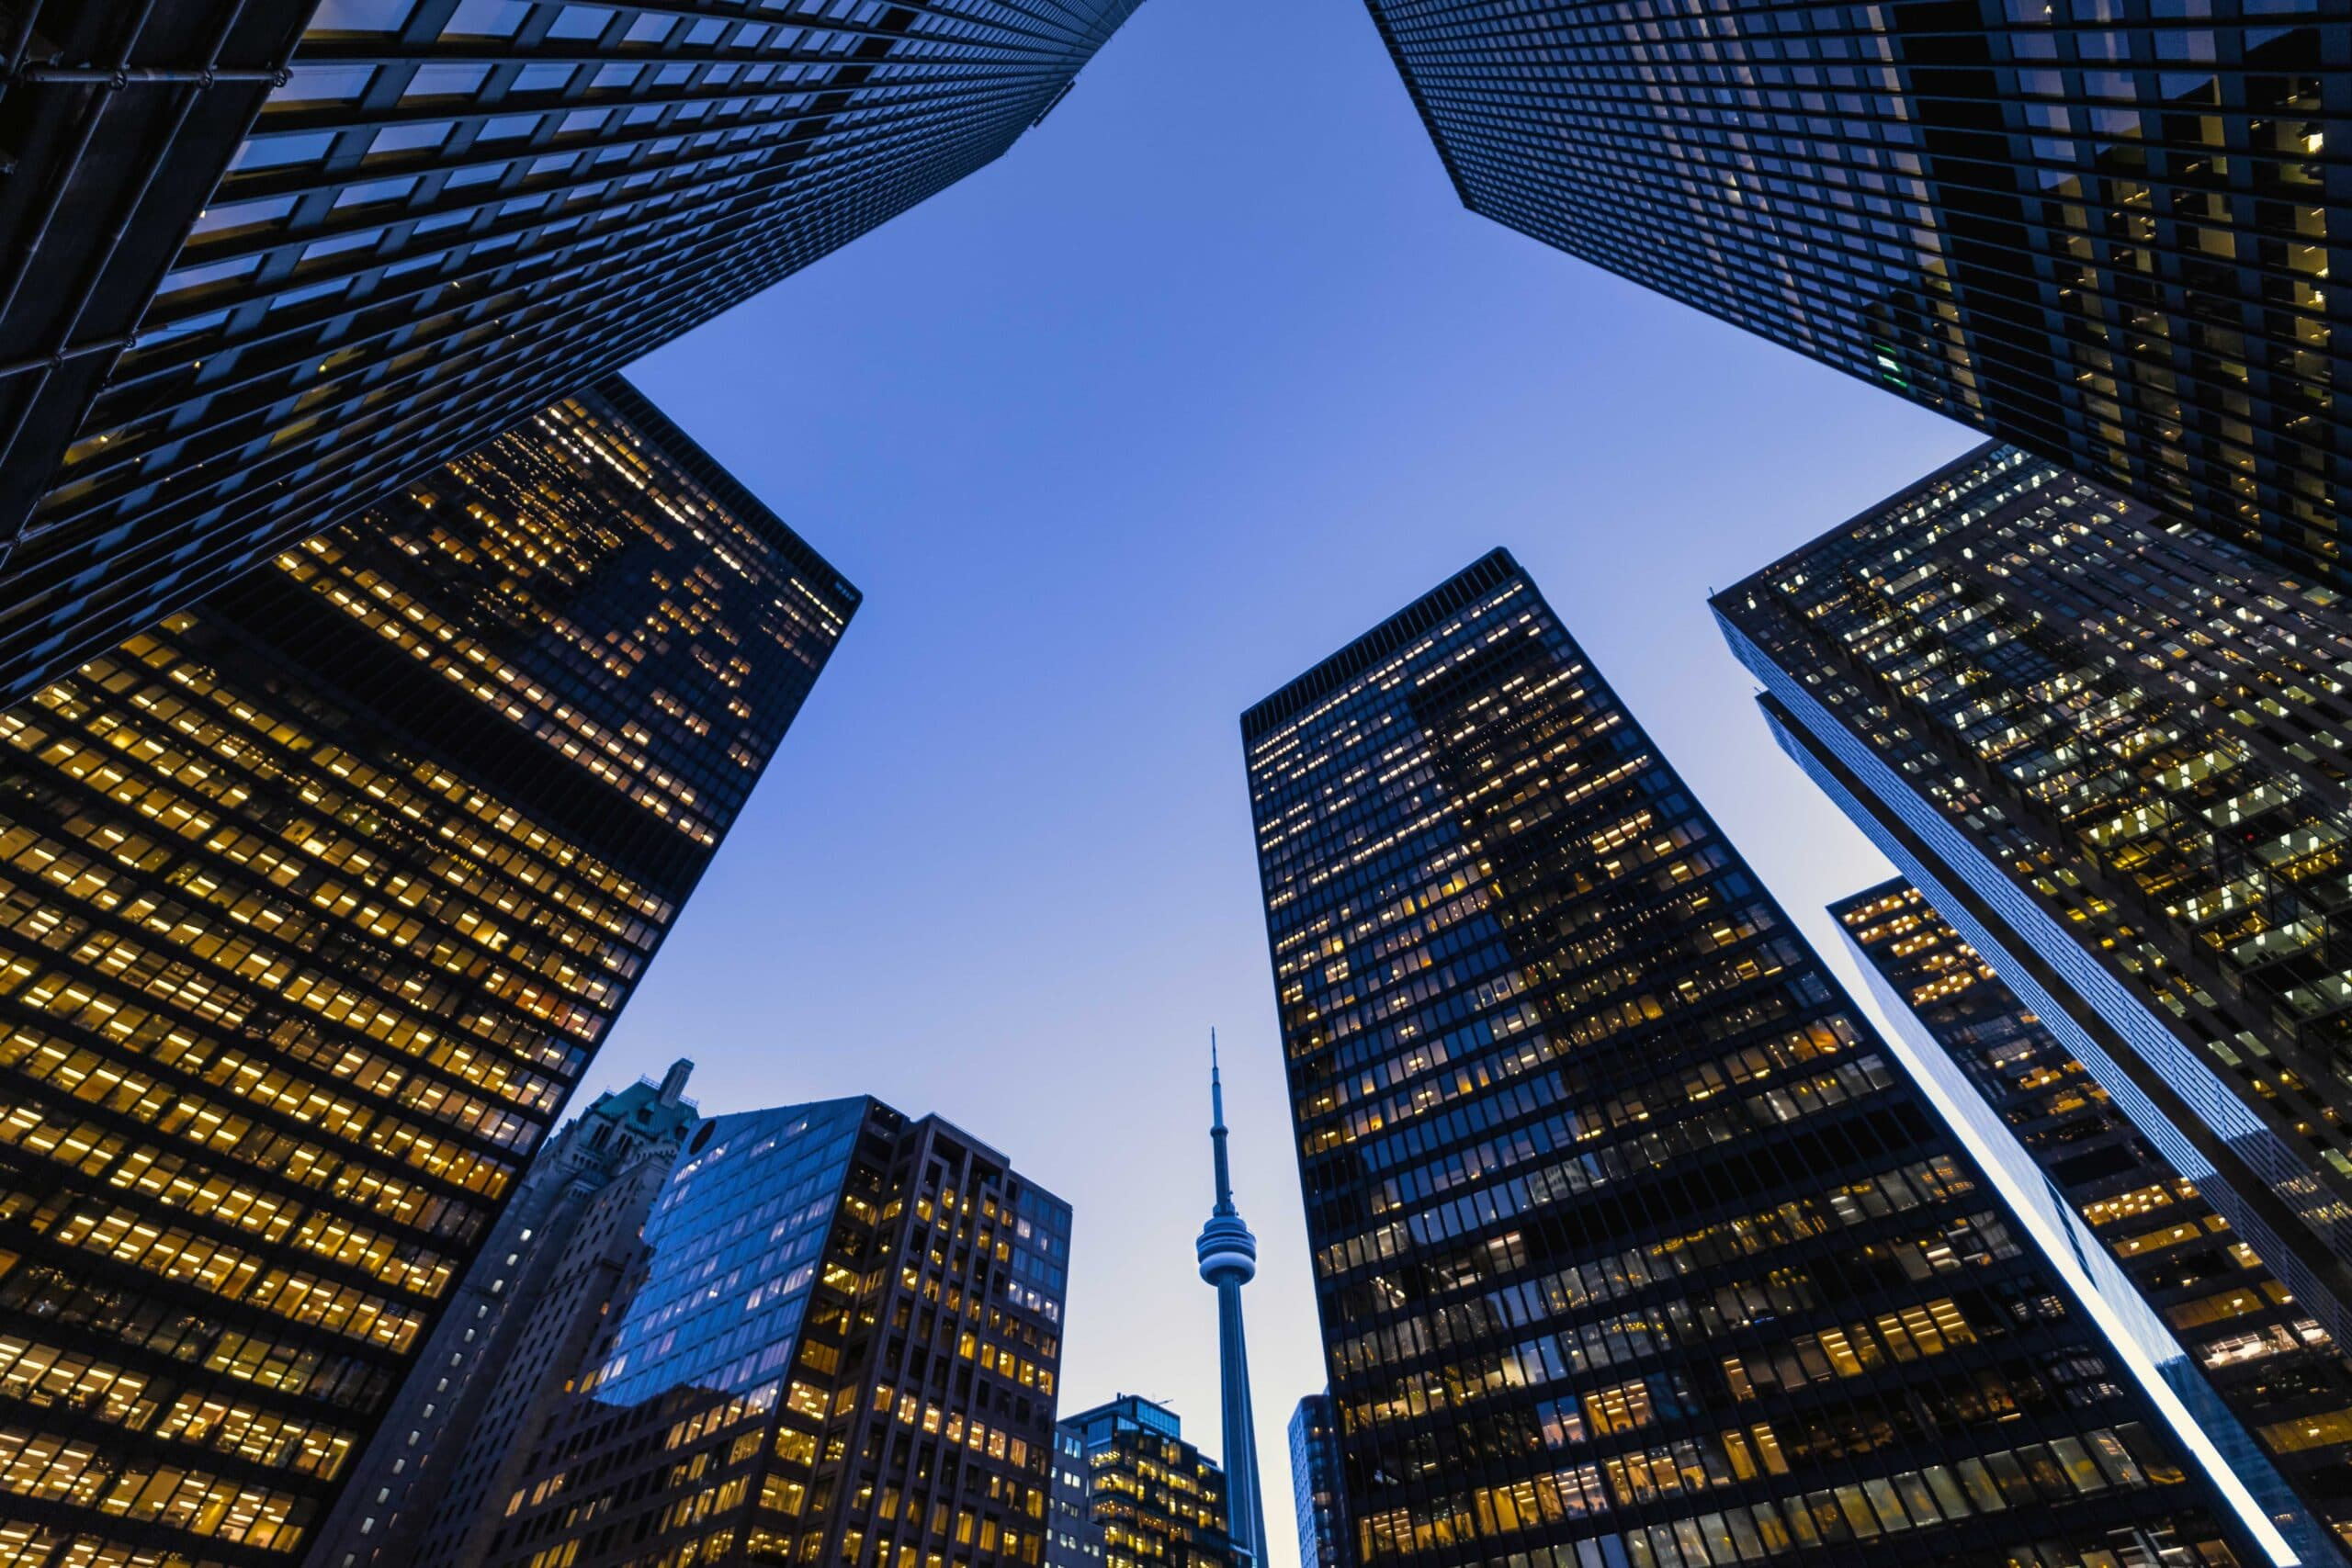 Business district architecture at night in downtown Toronto.